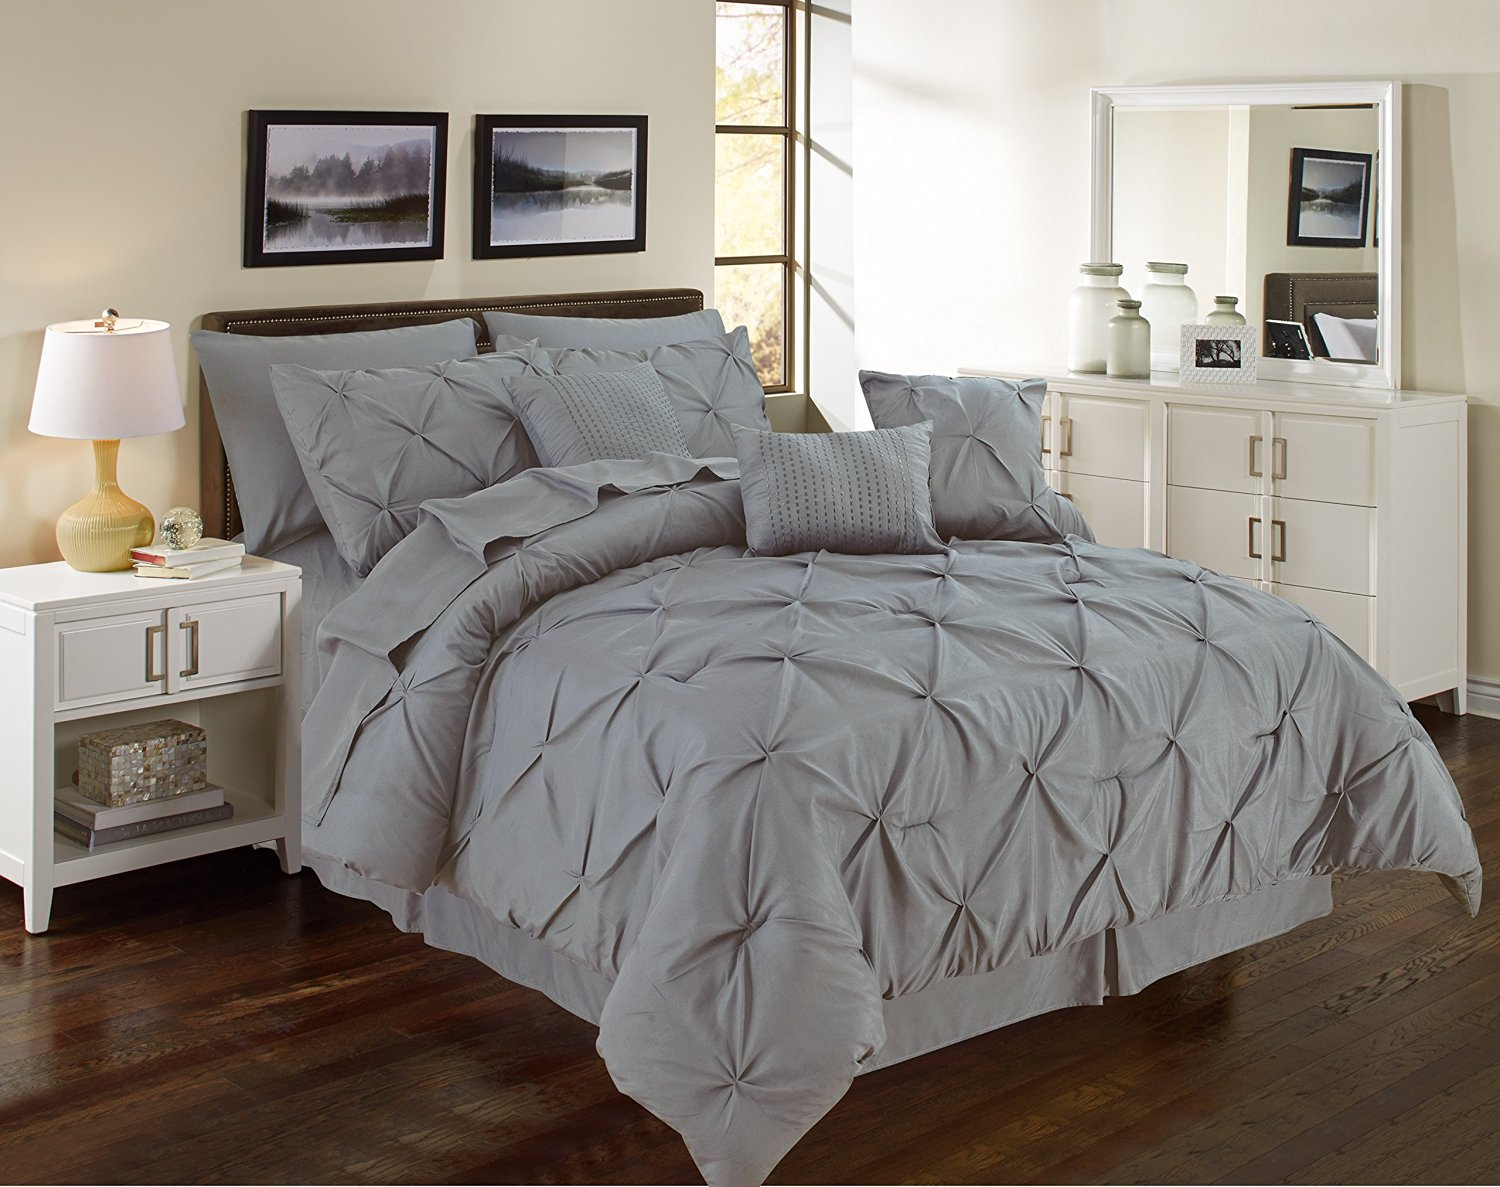 Pintuck Gray 11 Piece Comforter Set Over Sized Pinch Pleated Bedding With Sheets  CALIFORNIA